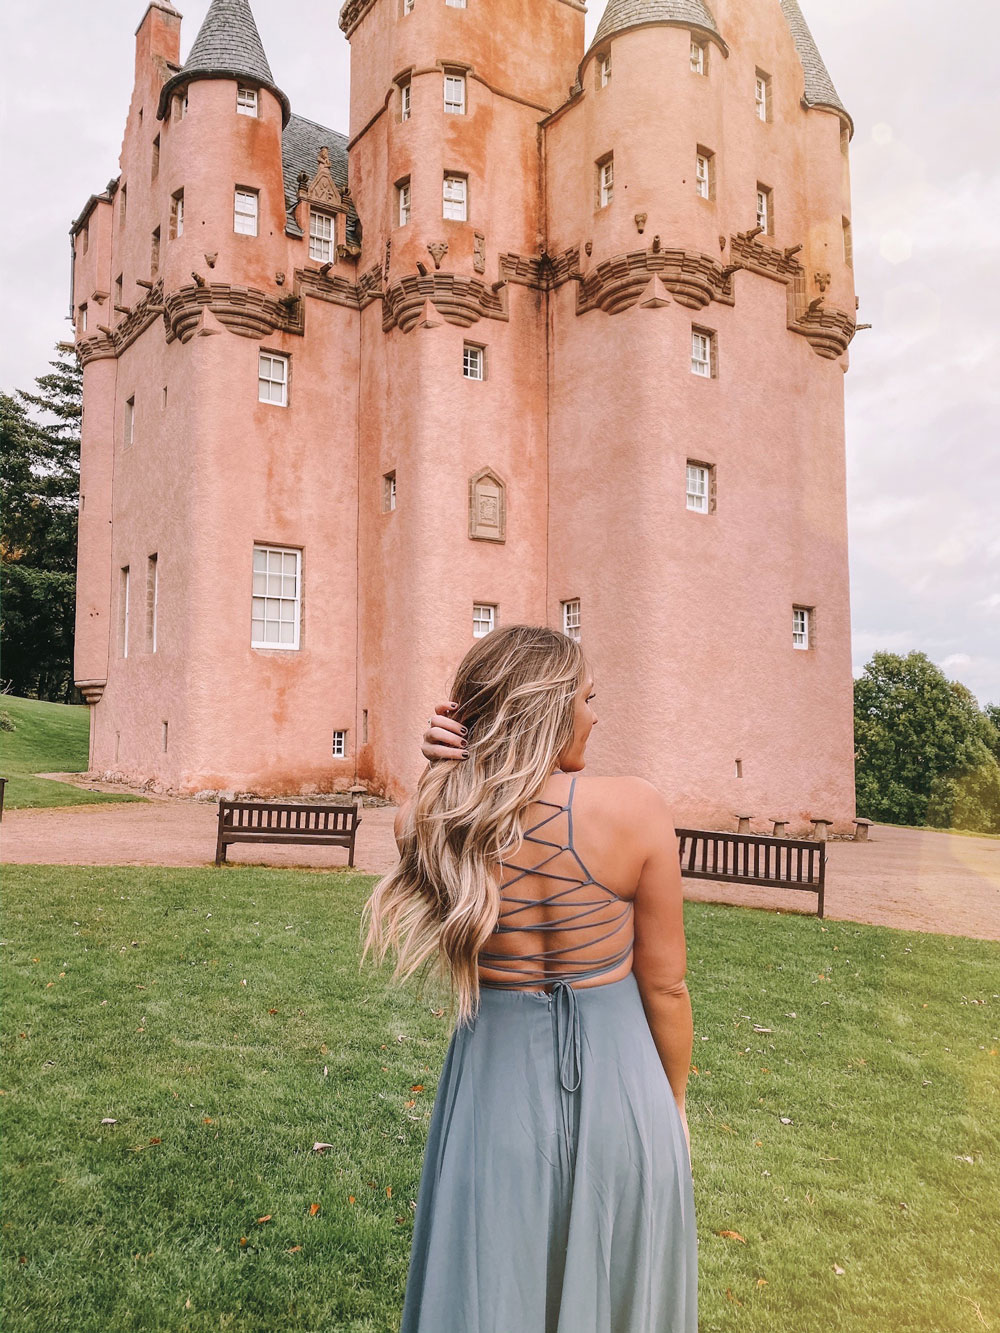 Travel blogger Amanda's OK visits castles in Scotland